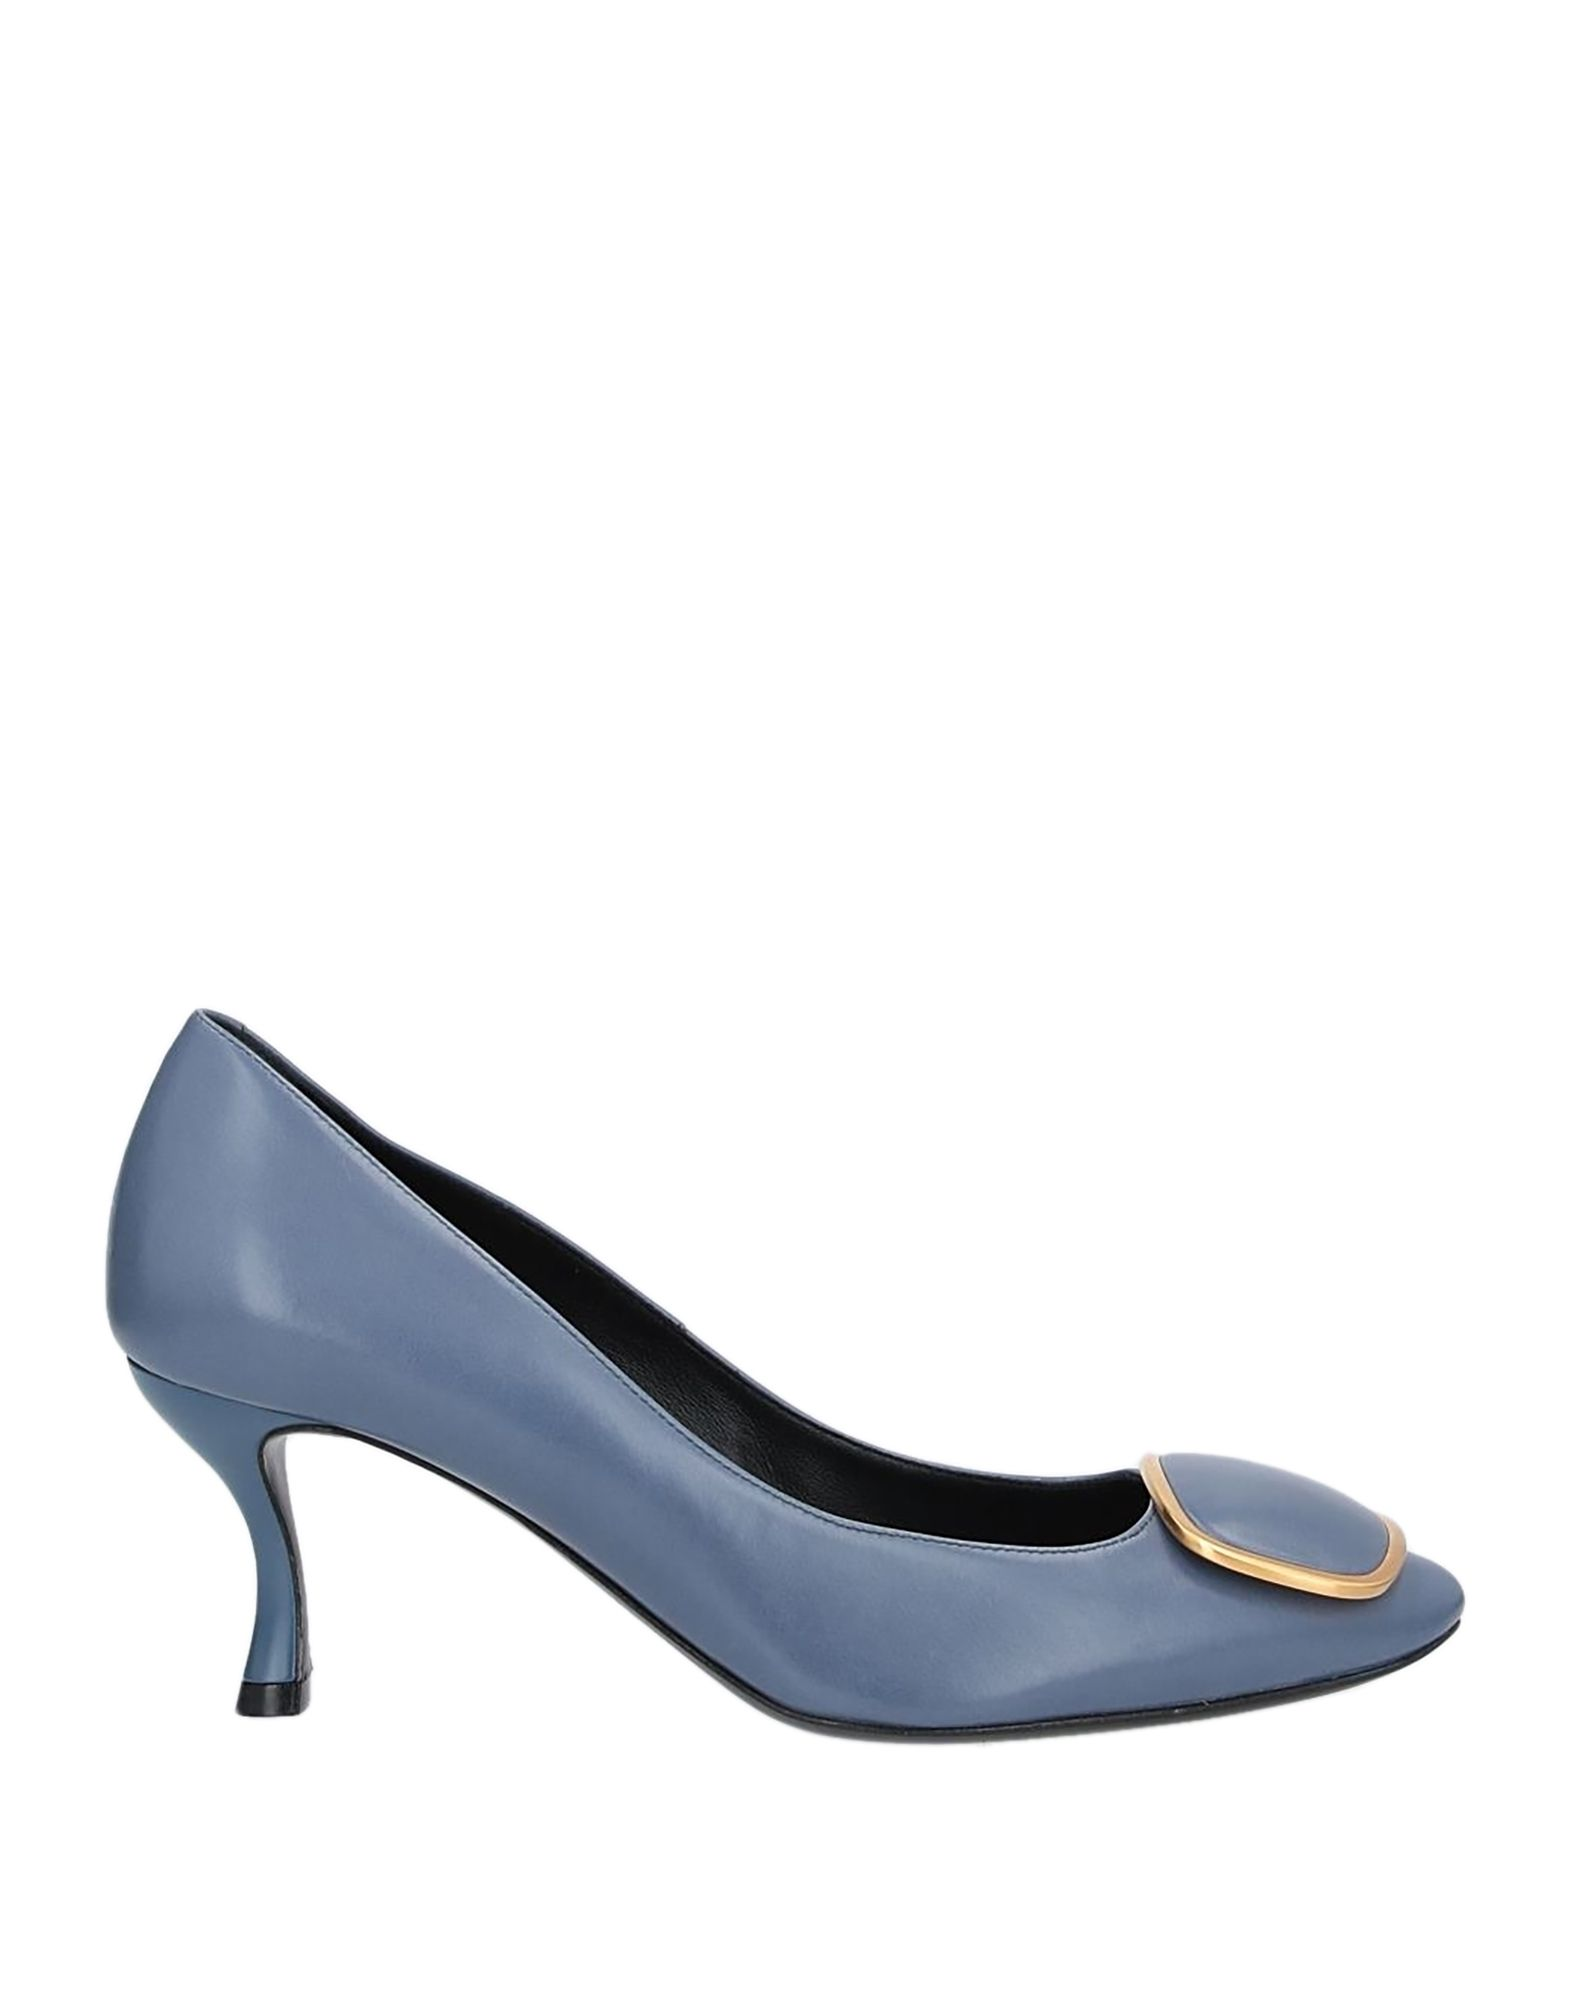 ROGER VIVIER Pumps. leather, metal applications, solid color, round toeline, spool heel, leather lining, leather sole, contains non-textile parts of animal origin. Soft Leather